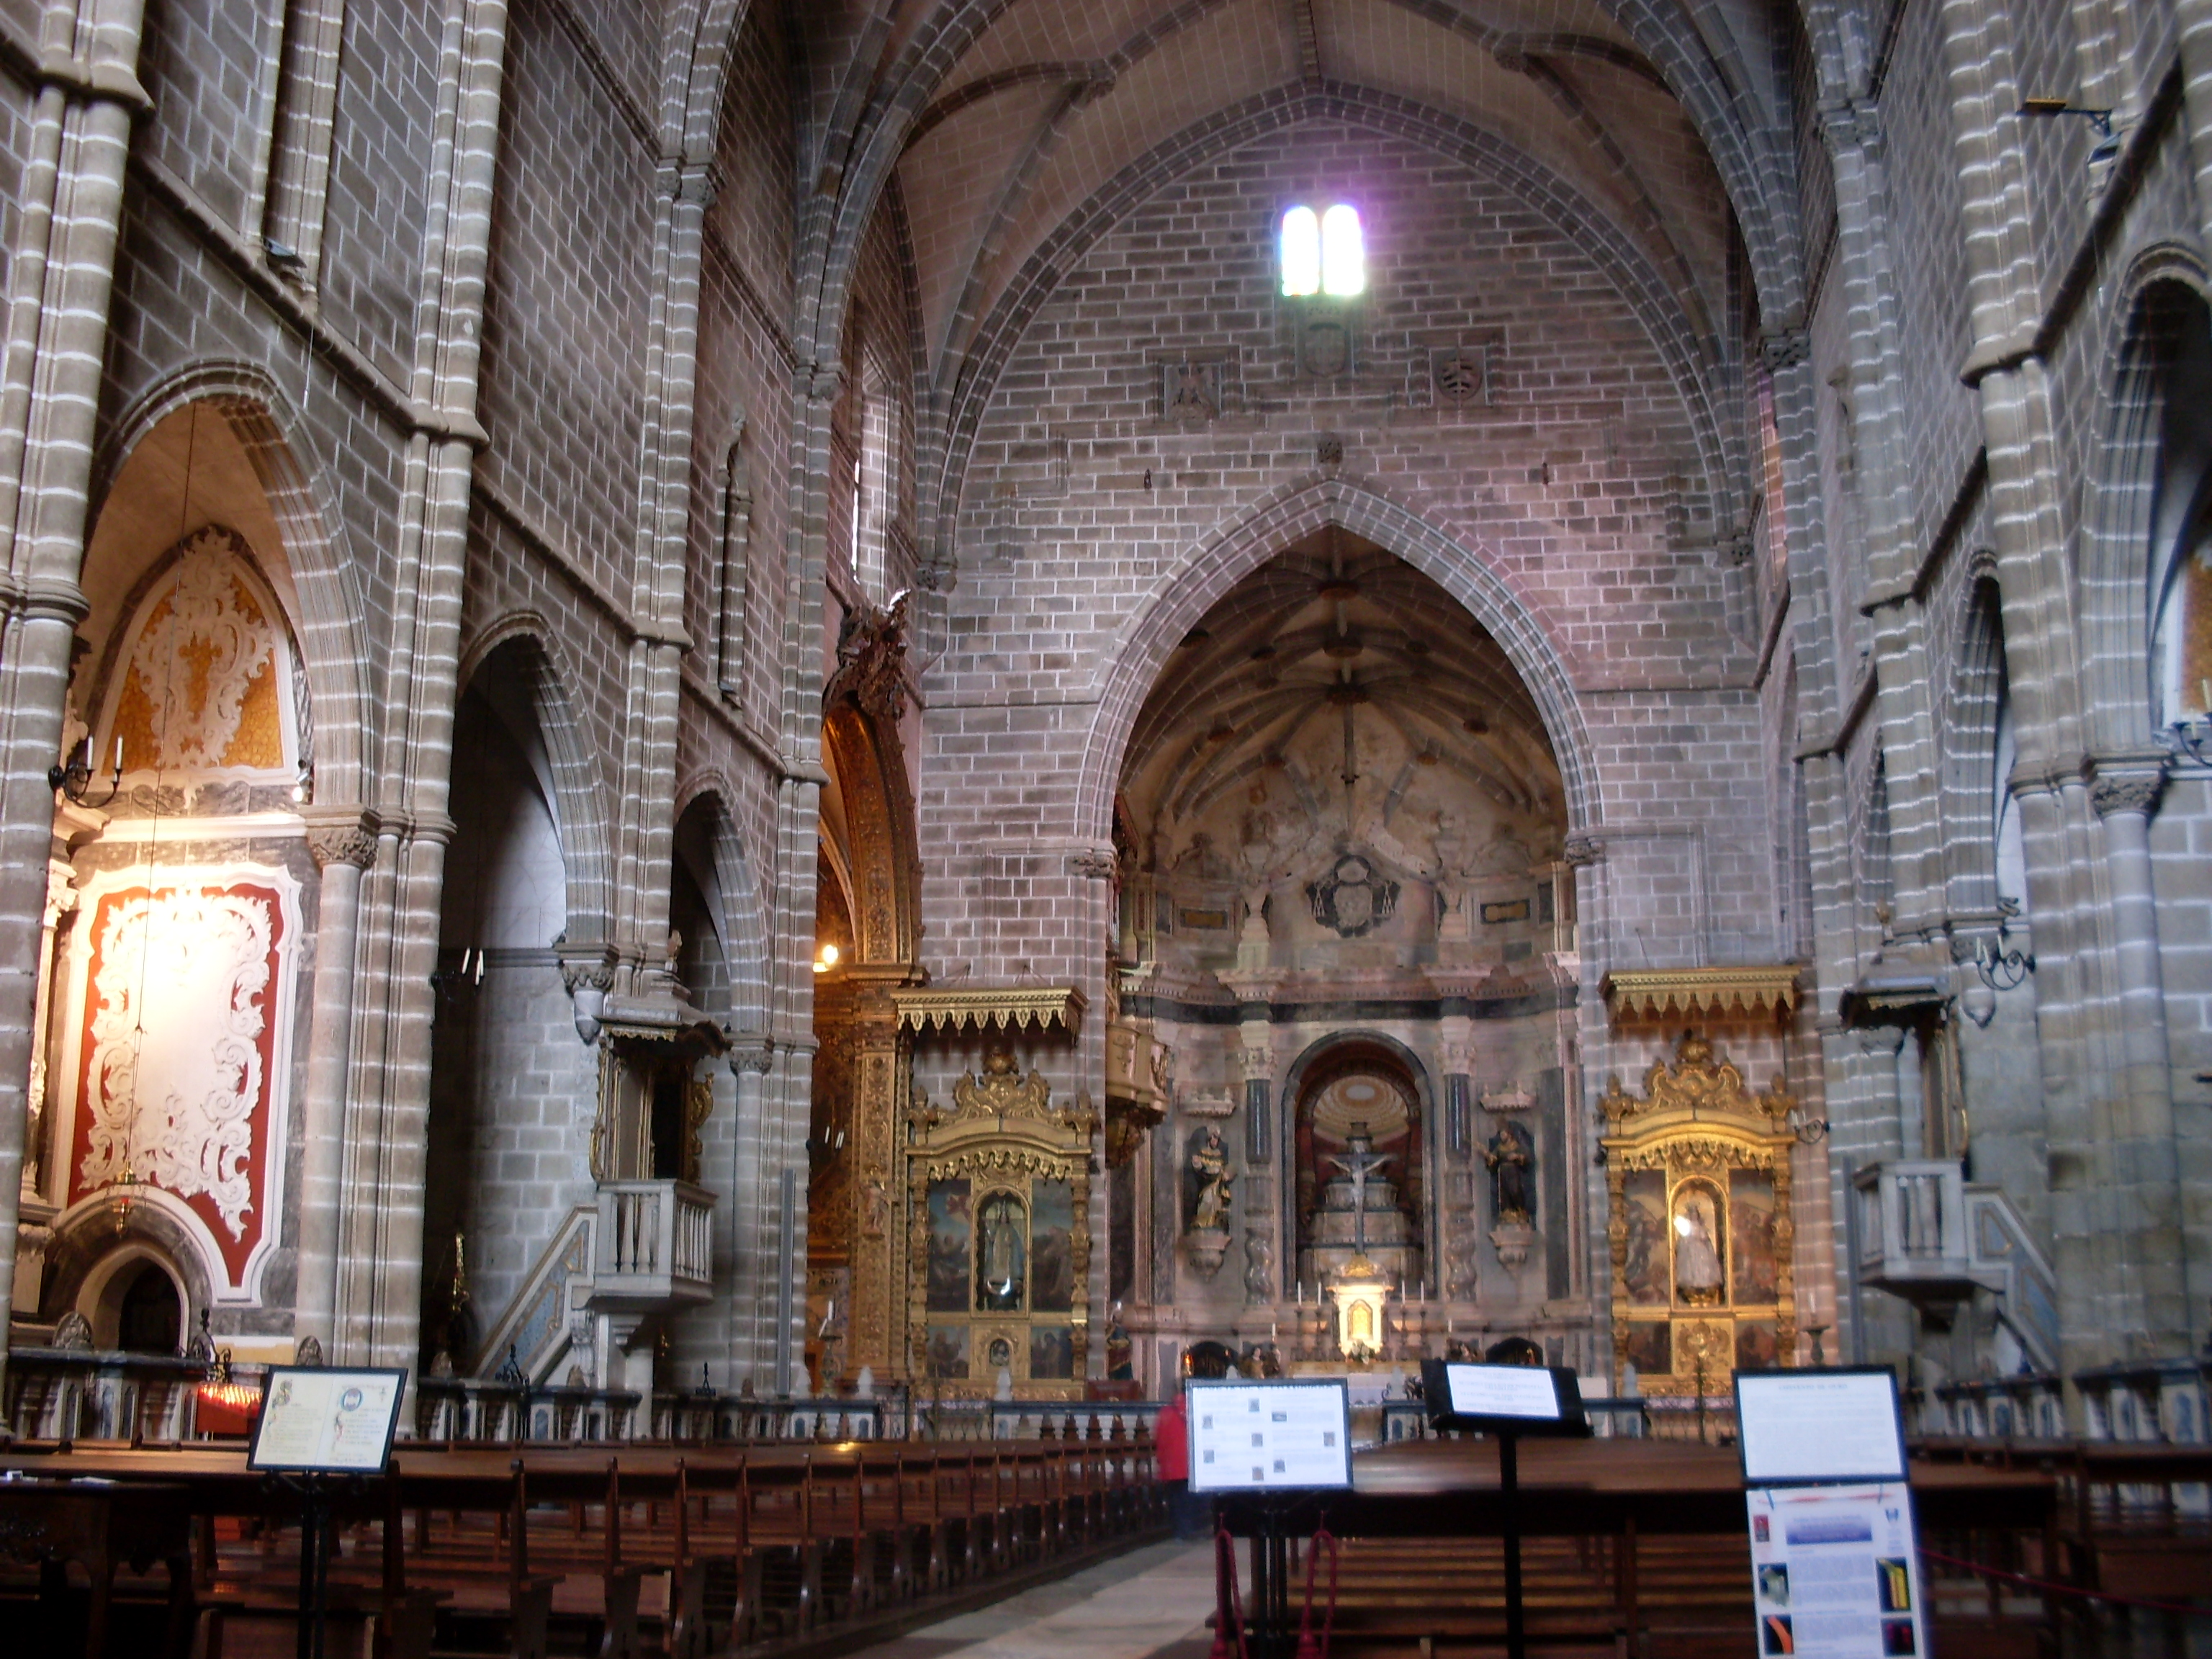 St. Francisco church interior